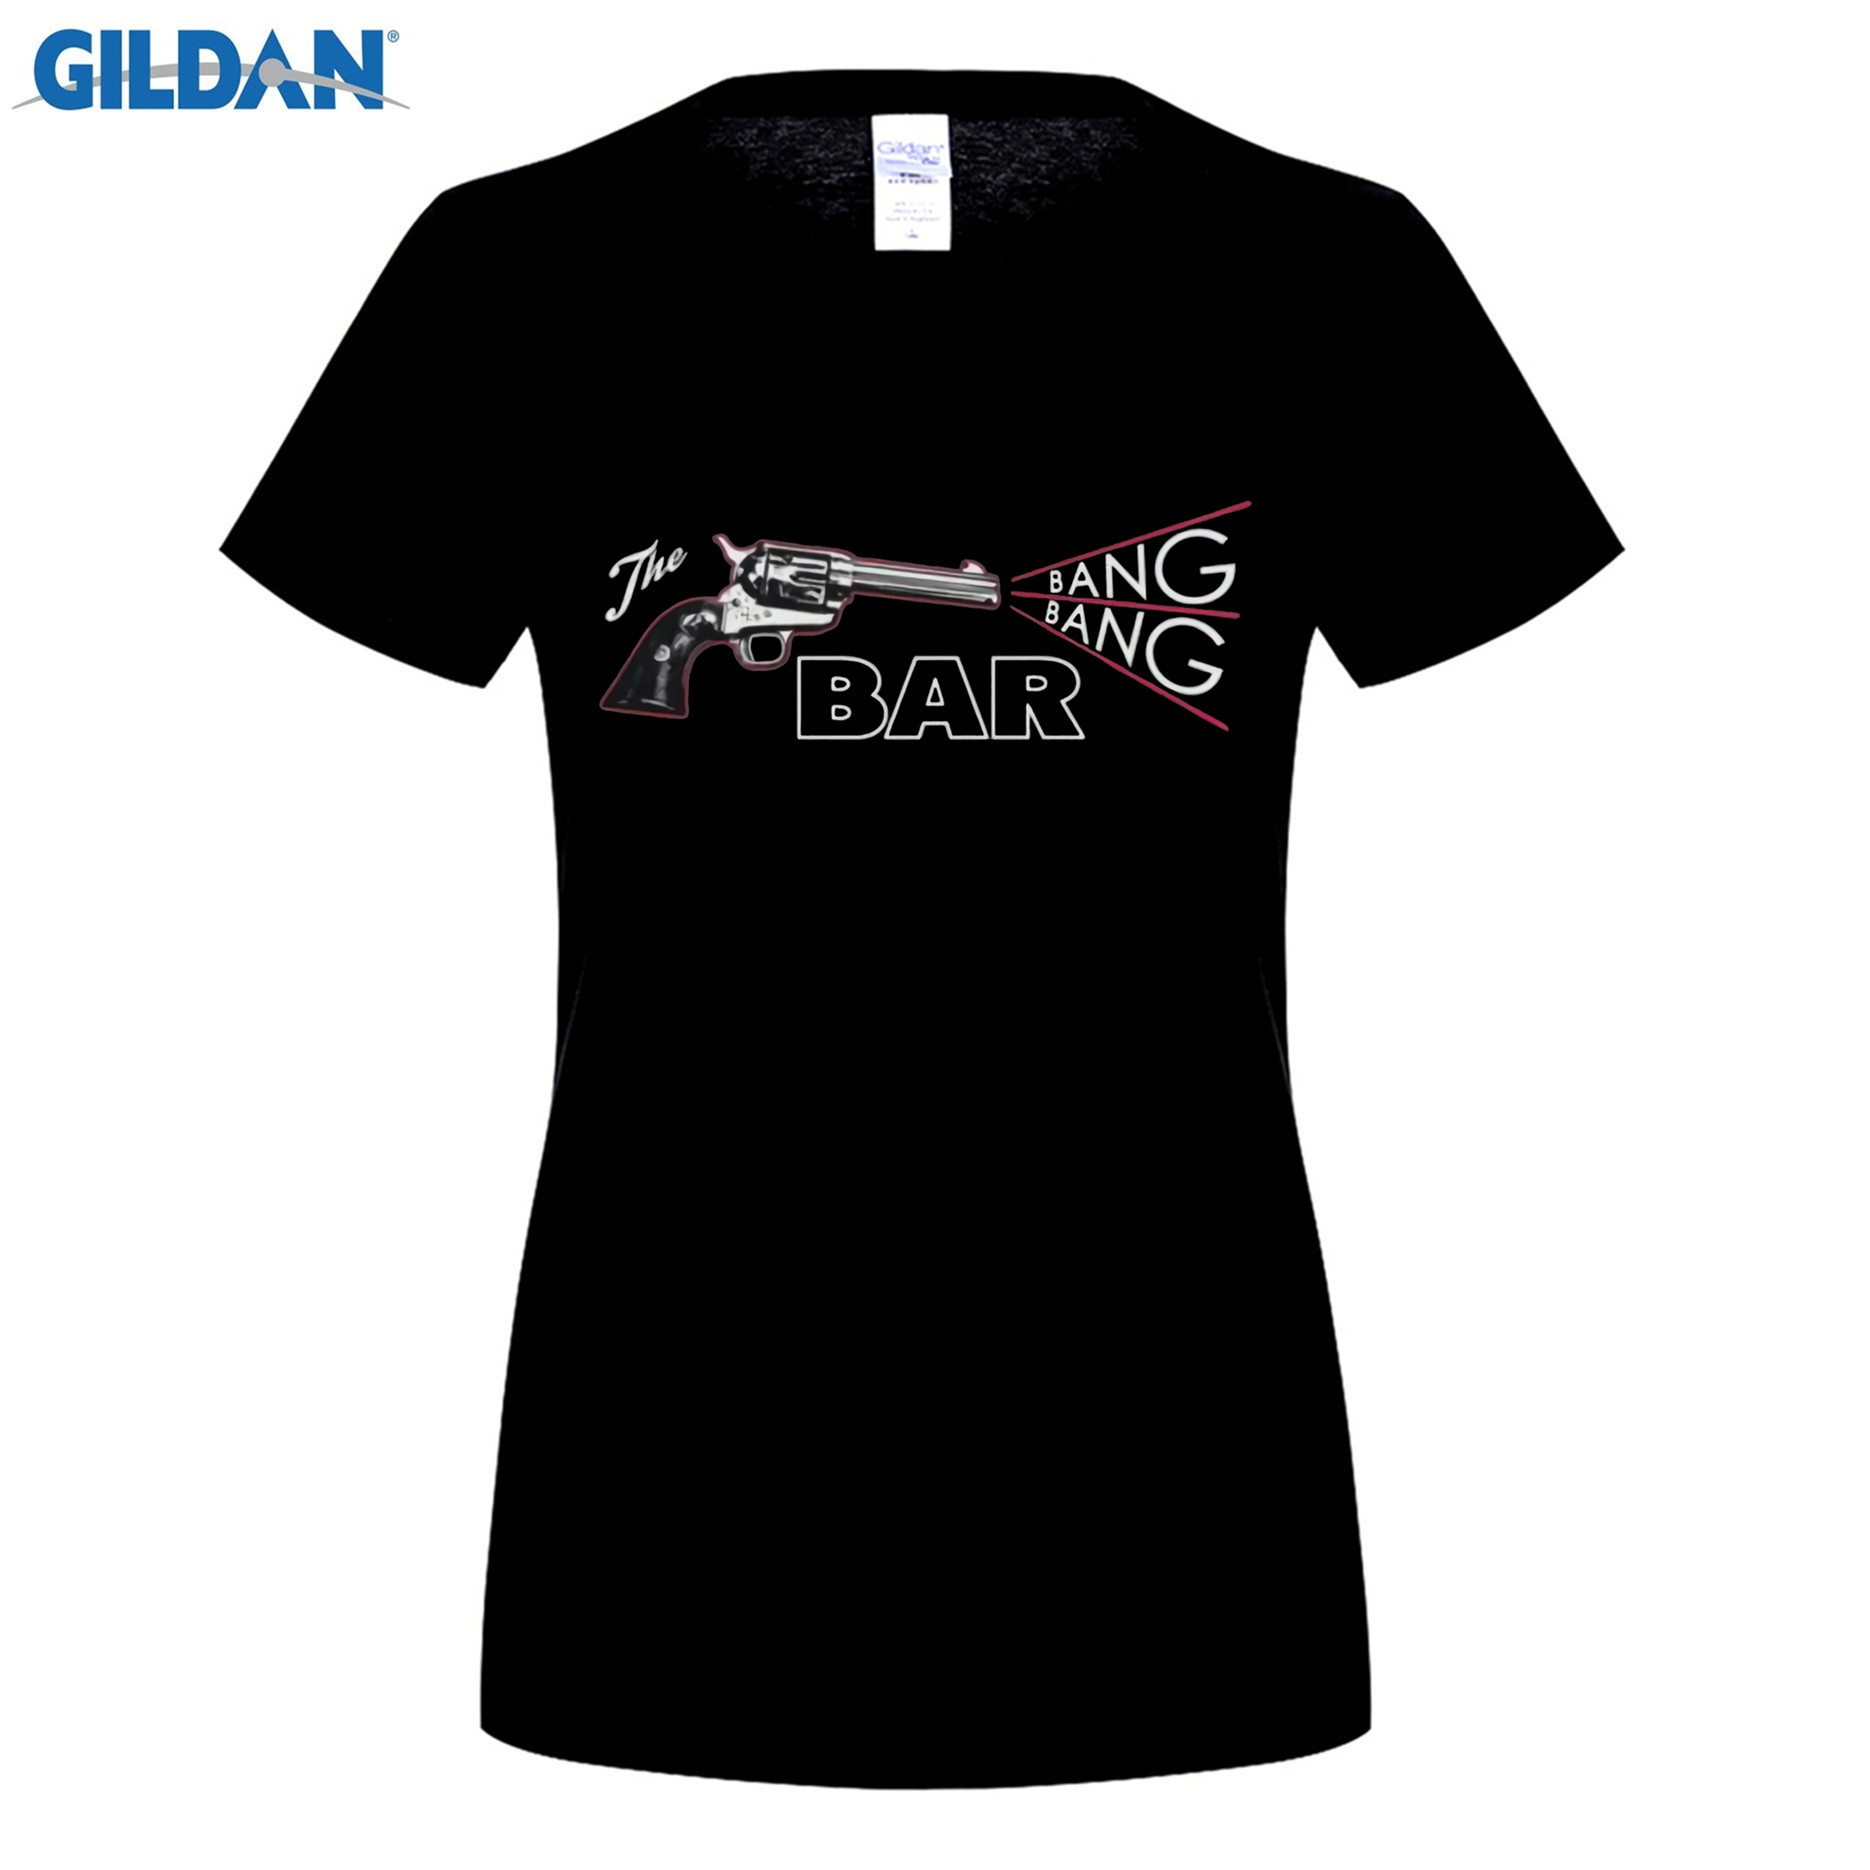 GILDAN 100% Cotton O-neck printed T-shirt Twin Peaks T Shirt The Bang Bang Bar for women